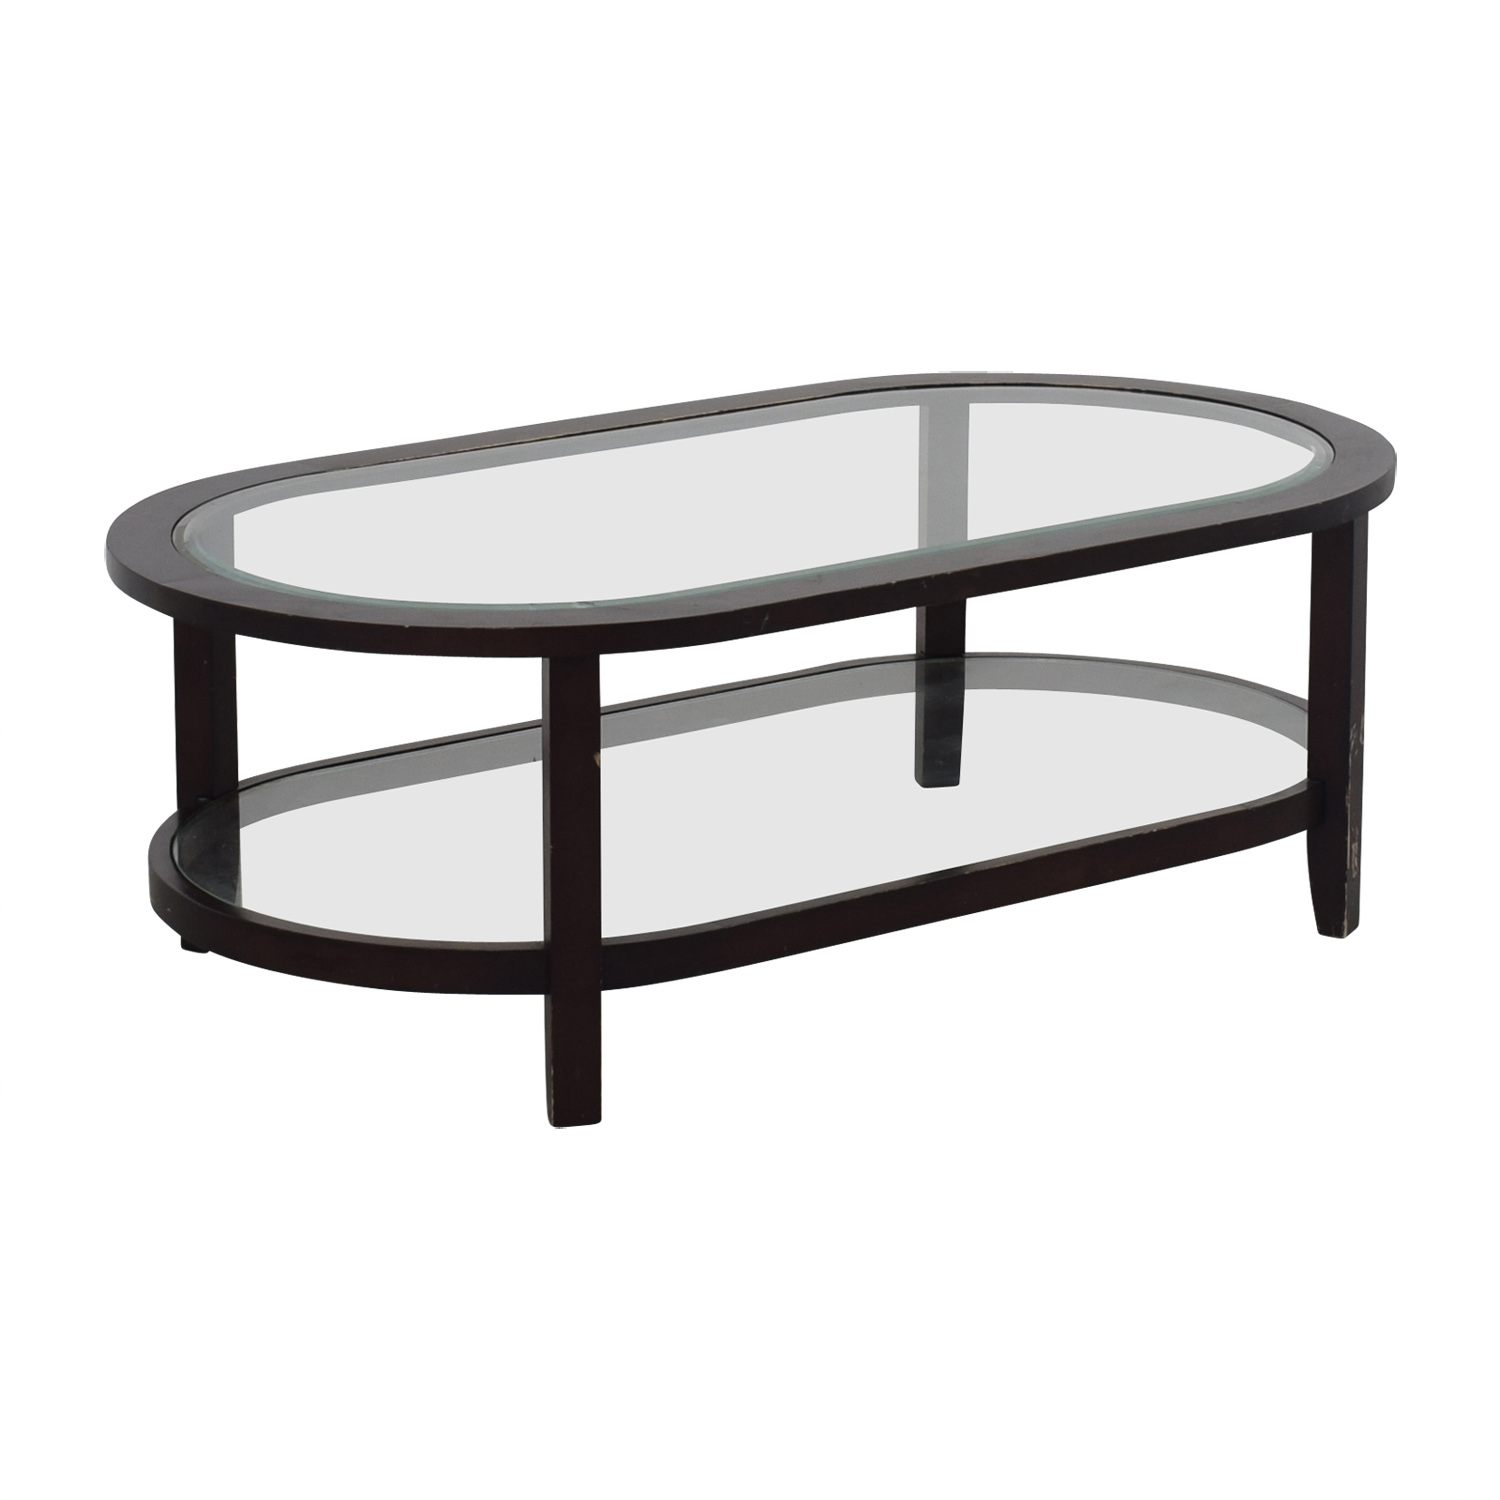 buy Crate & Barrel Crate & Barrel Oval Glass Coffee Table online